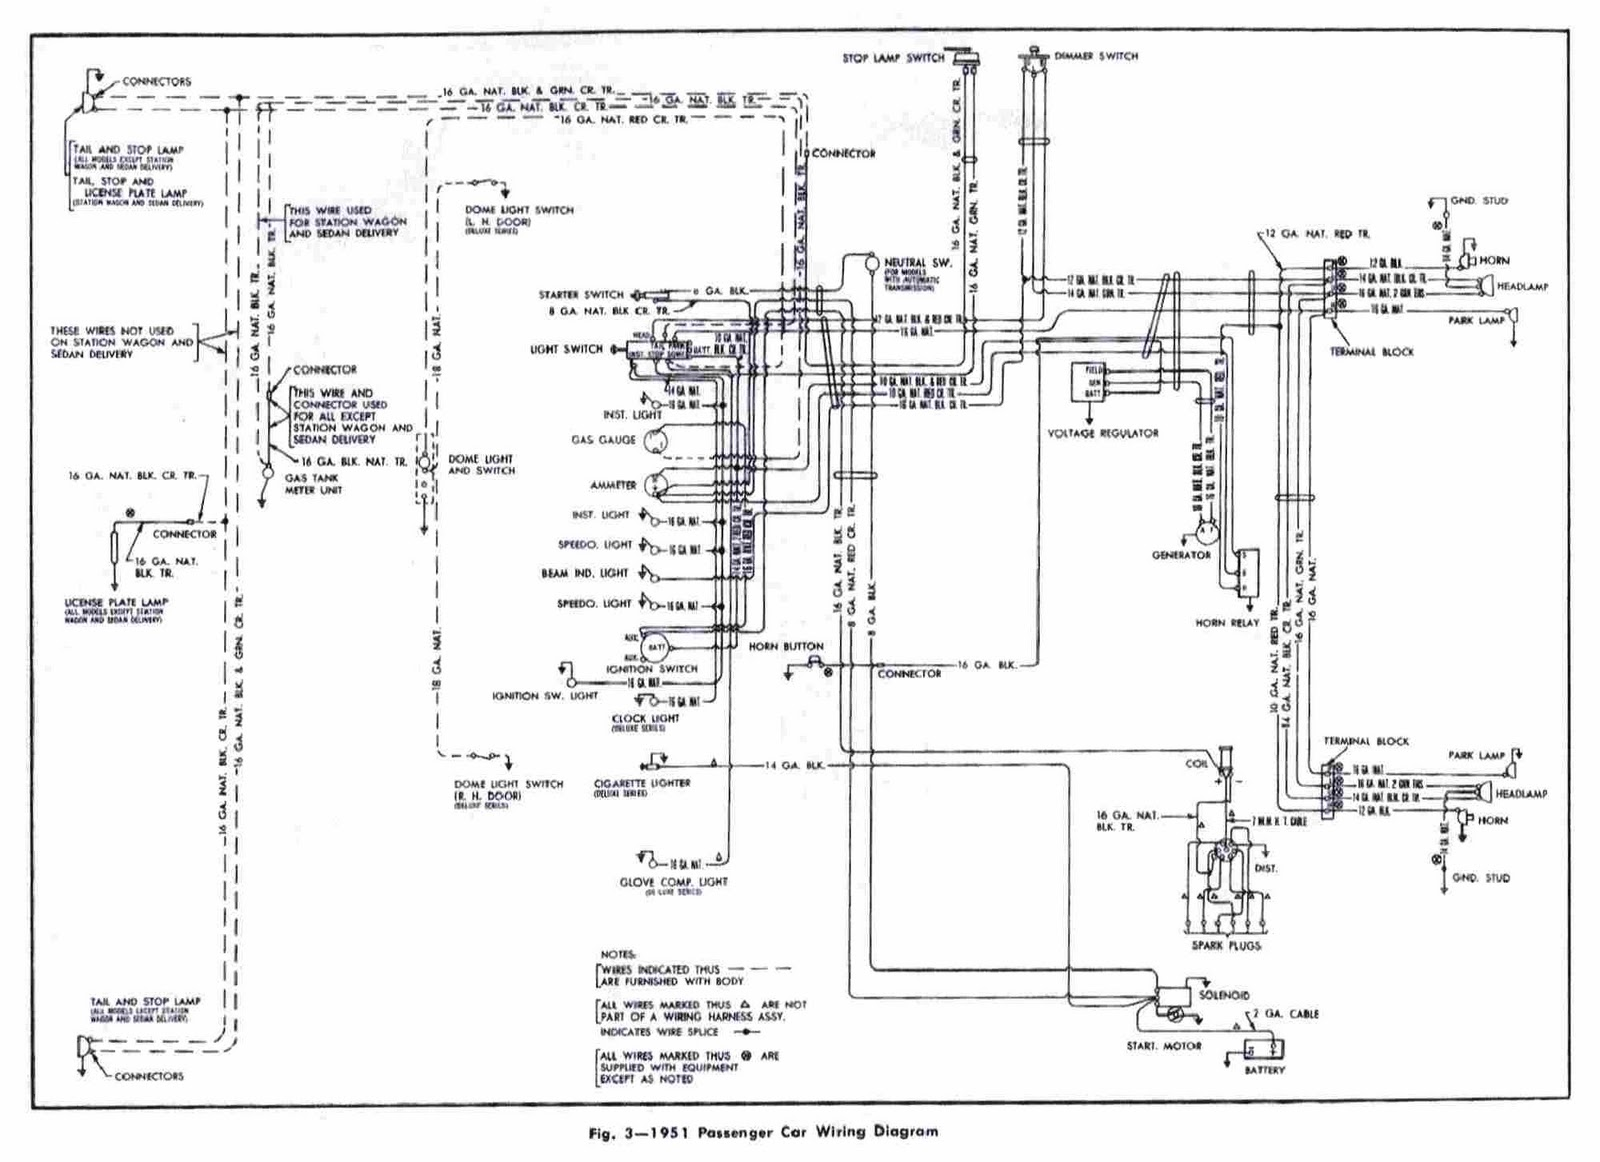 car e wiring diagram of chevrolet passenger pictures